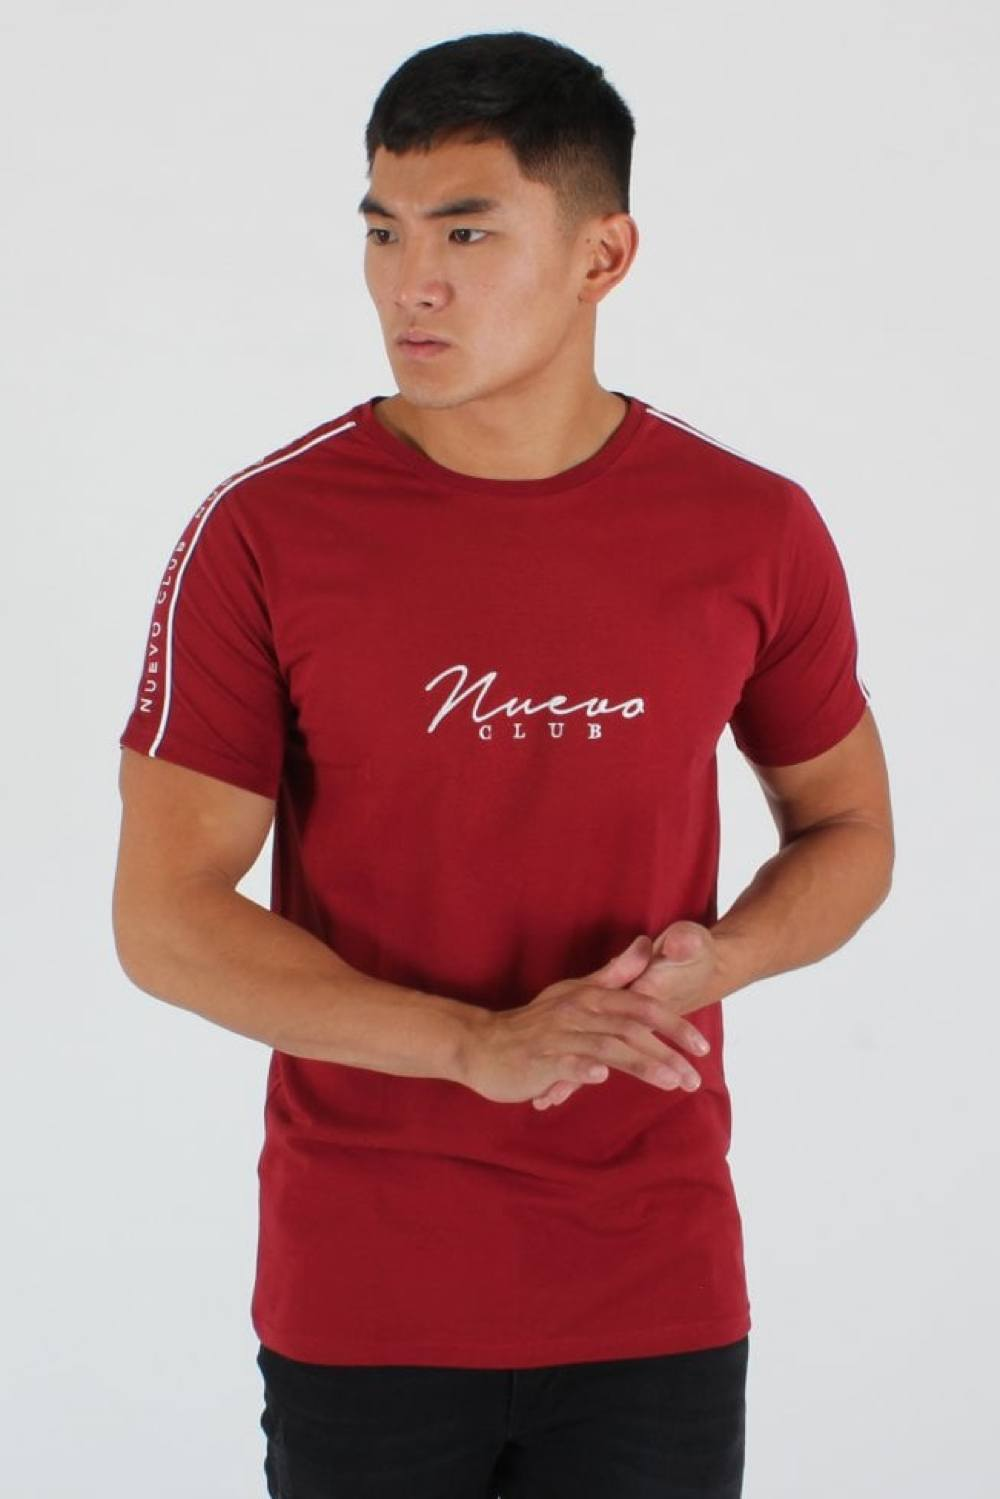 Nuevo Club Signature Taping T-Shirt - Red - 1